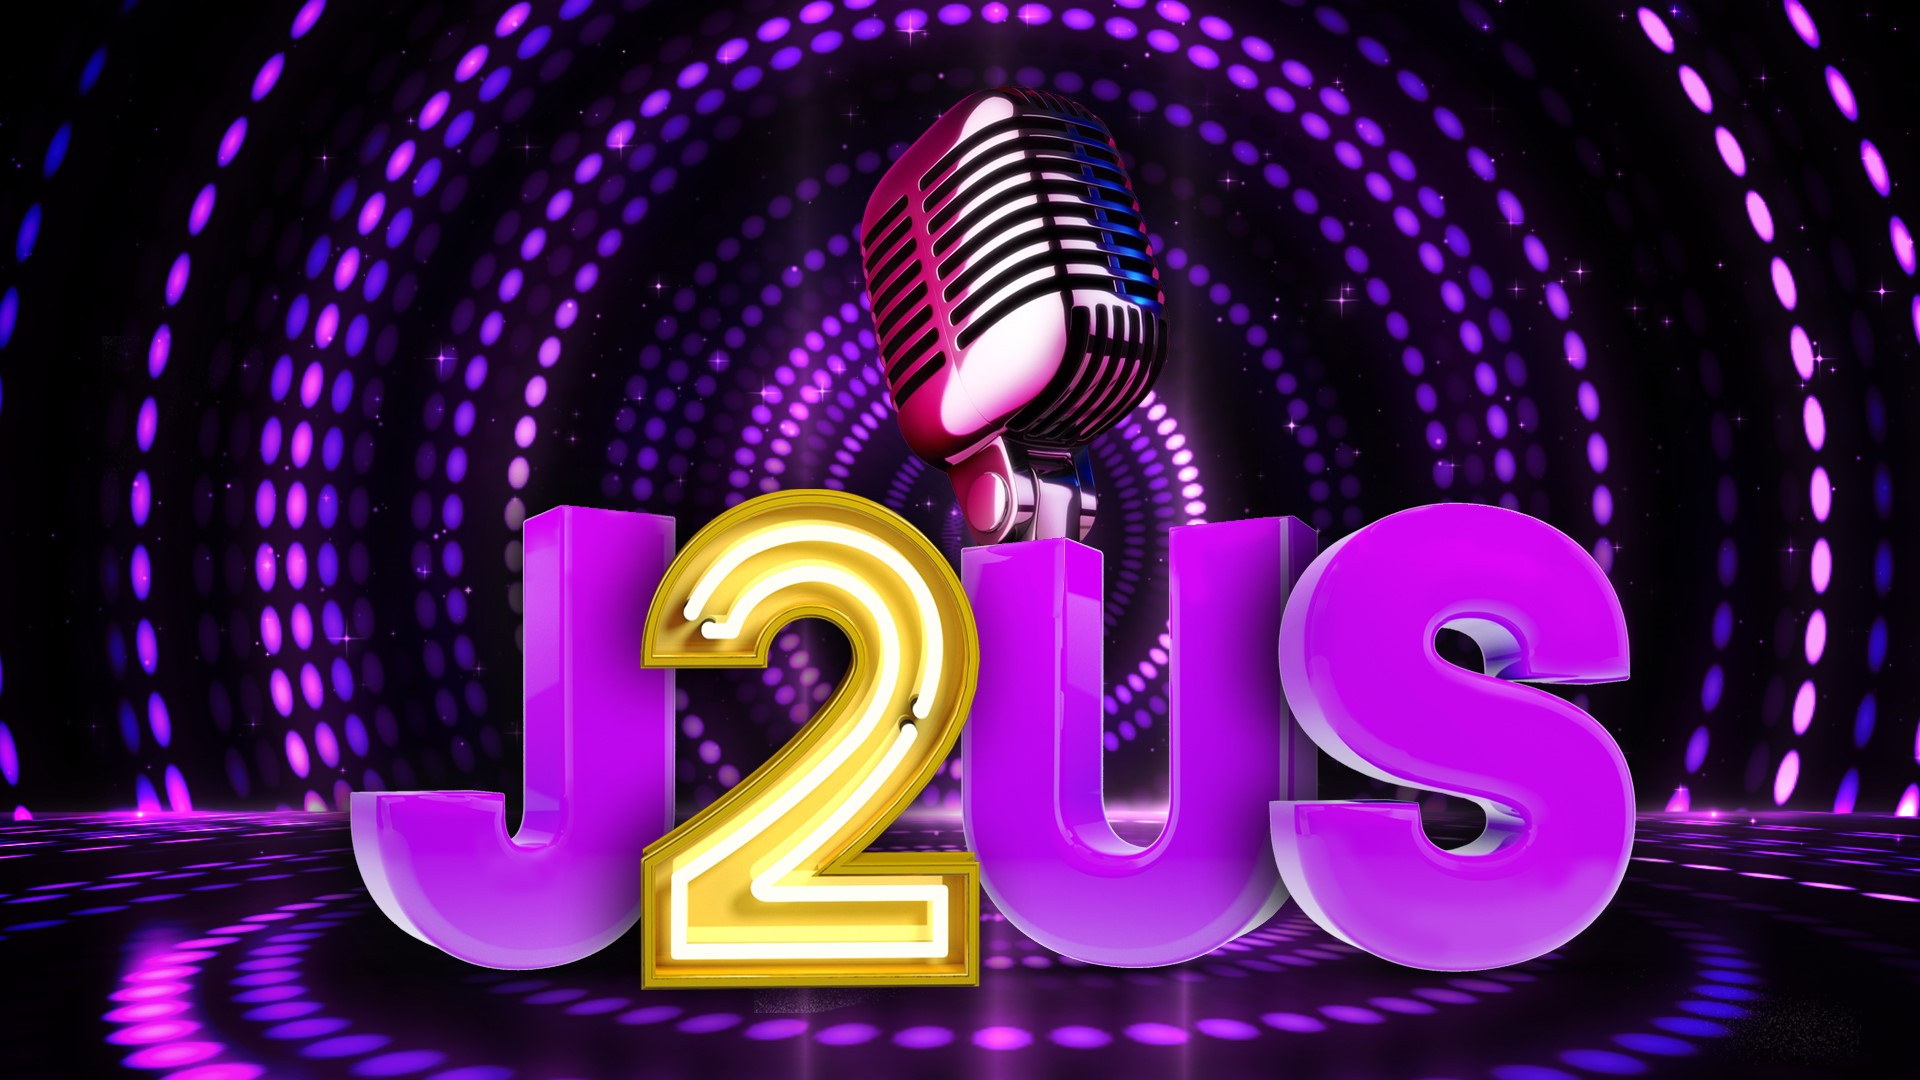 J2US - Just the 2 of us